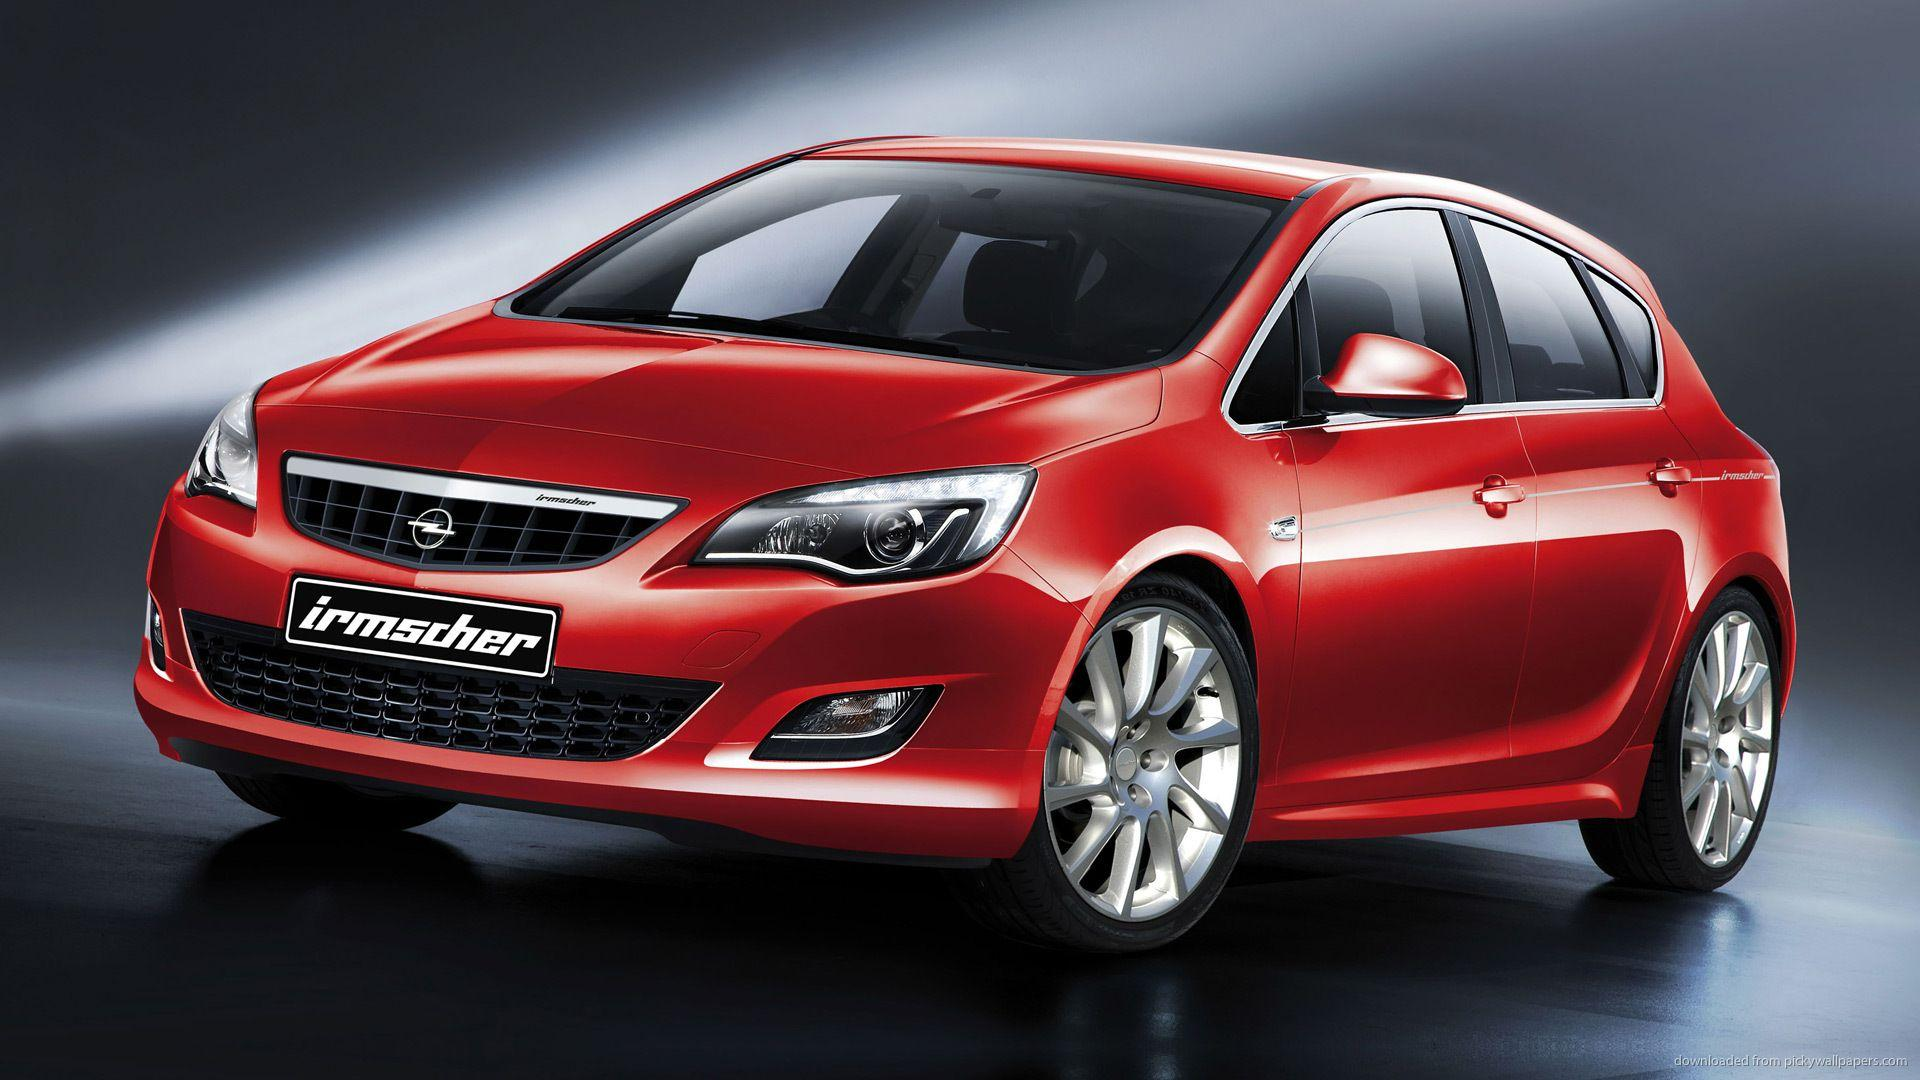 Opel Astra Wallpapers For Nokia X2